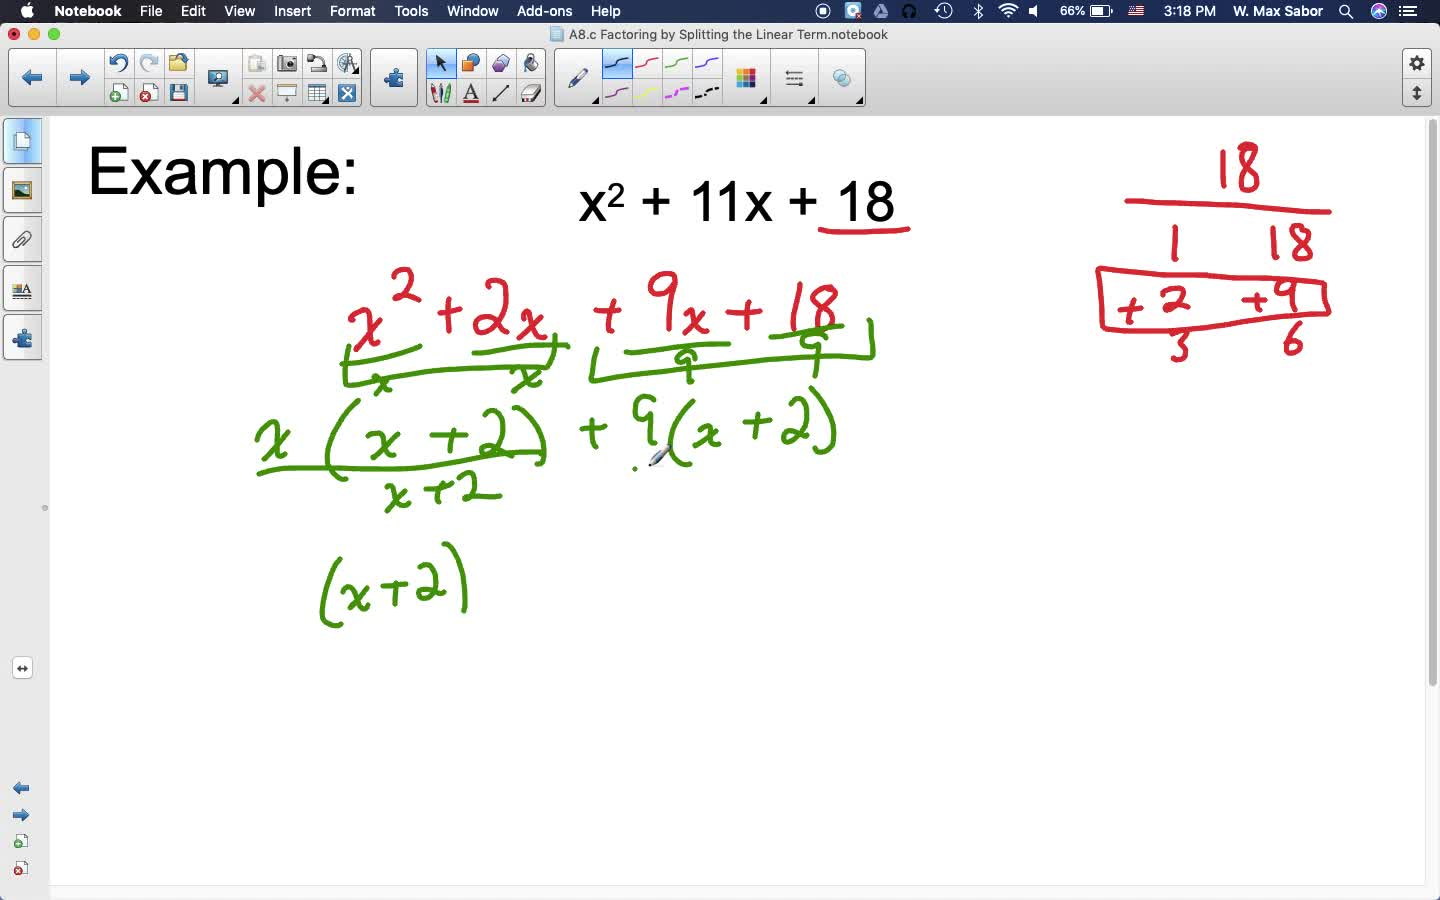 A8.c Factoring by Splitting the Linear Term